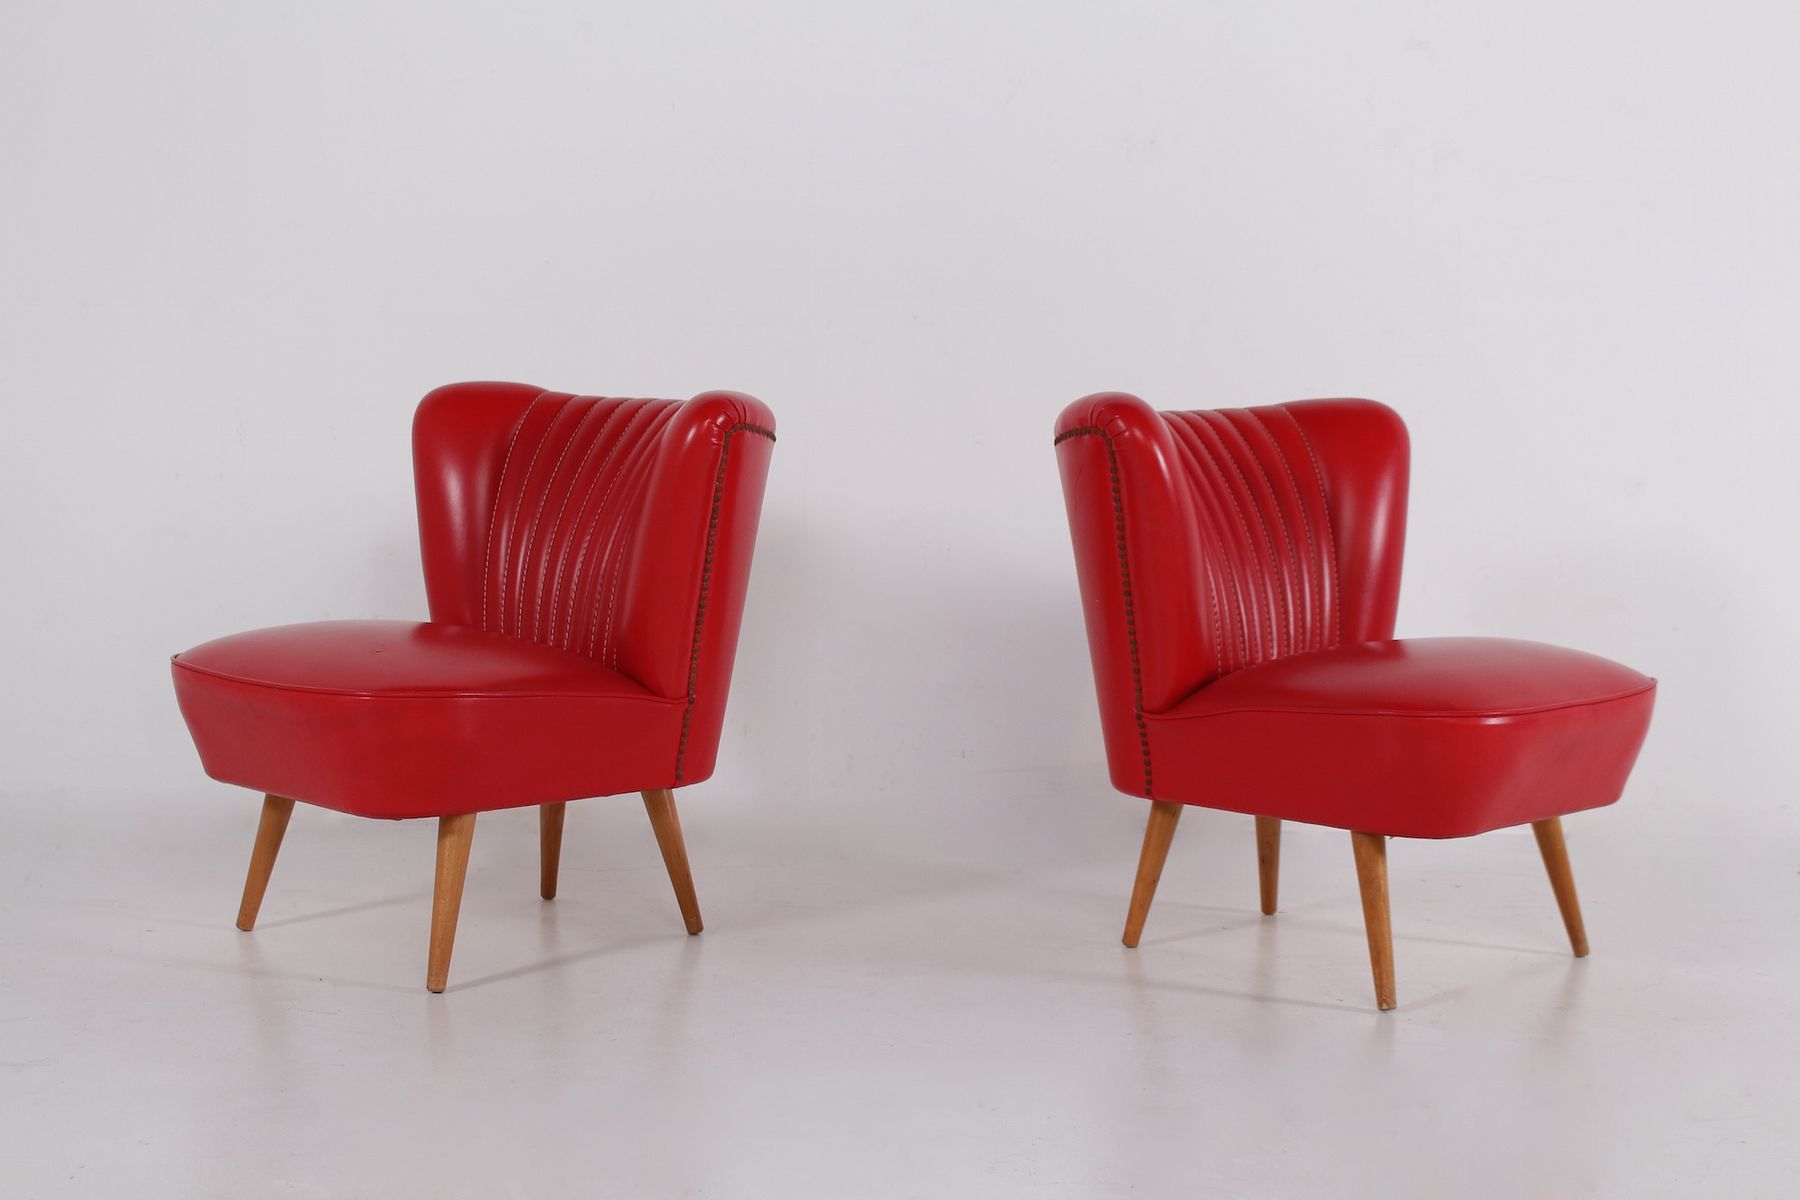 2 Fauteuils Cocktails Fauteuils Cocktail En Skaï Rouge Set De 2 1950s